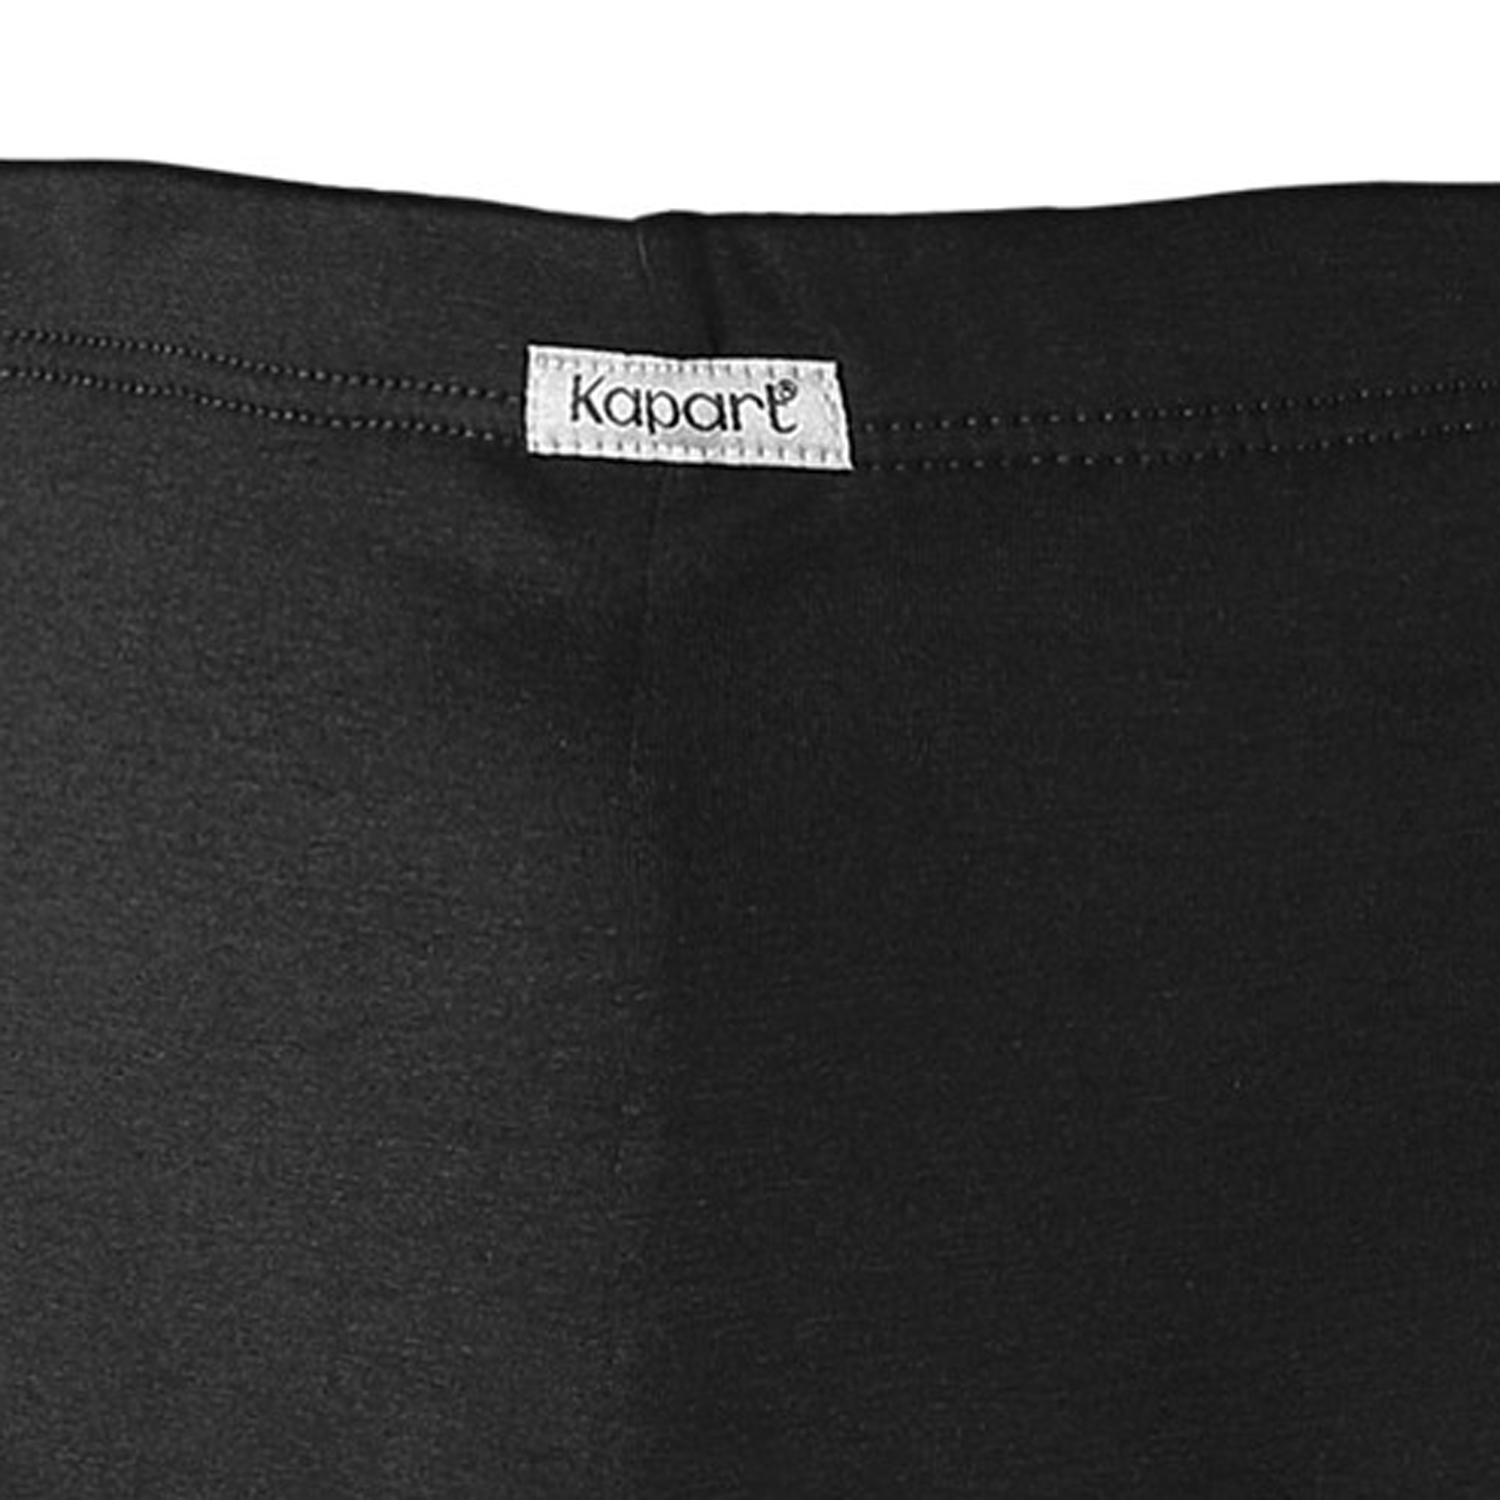 Detail Image to Underwear pant black in oversize by Kapart up to size 16